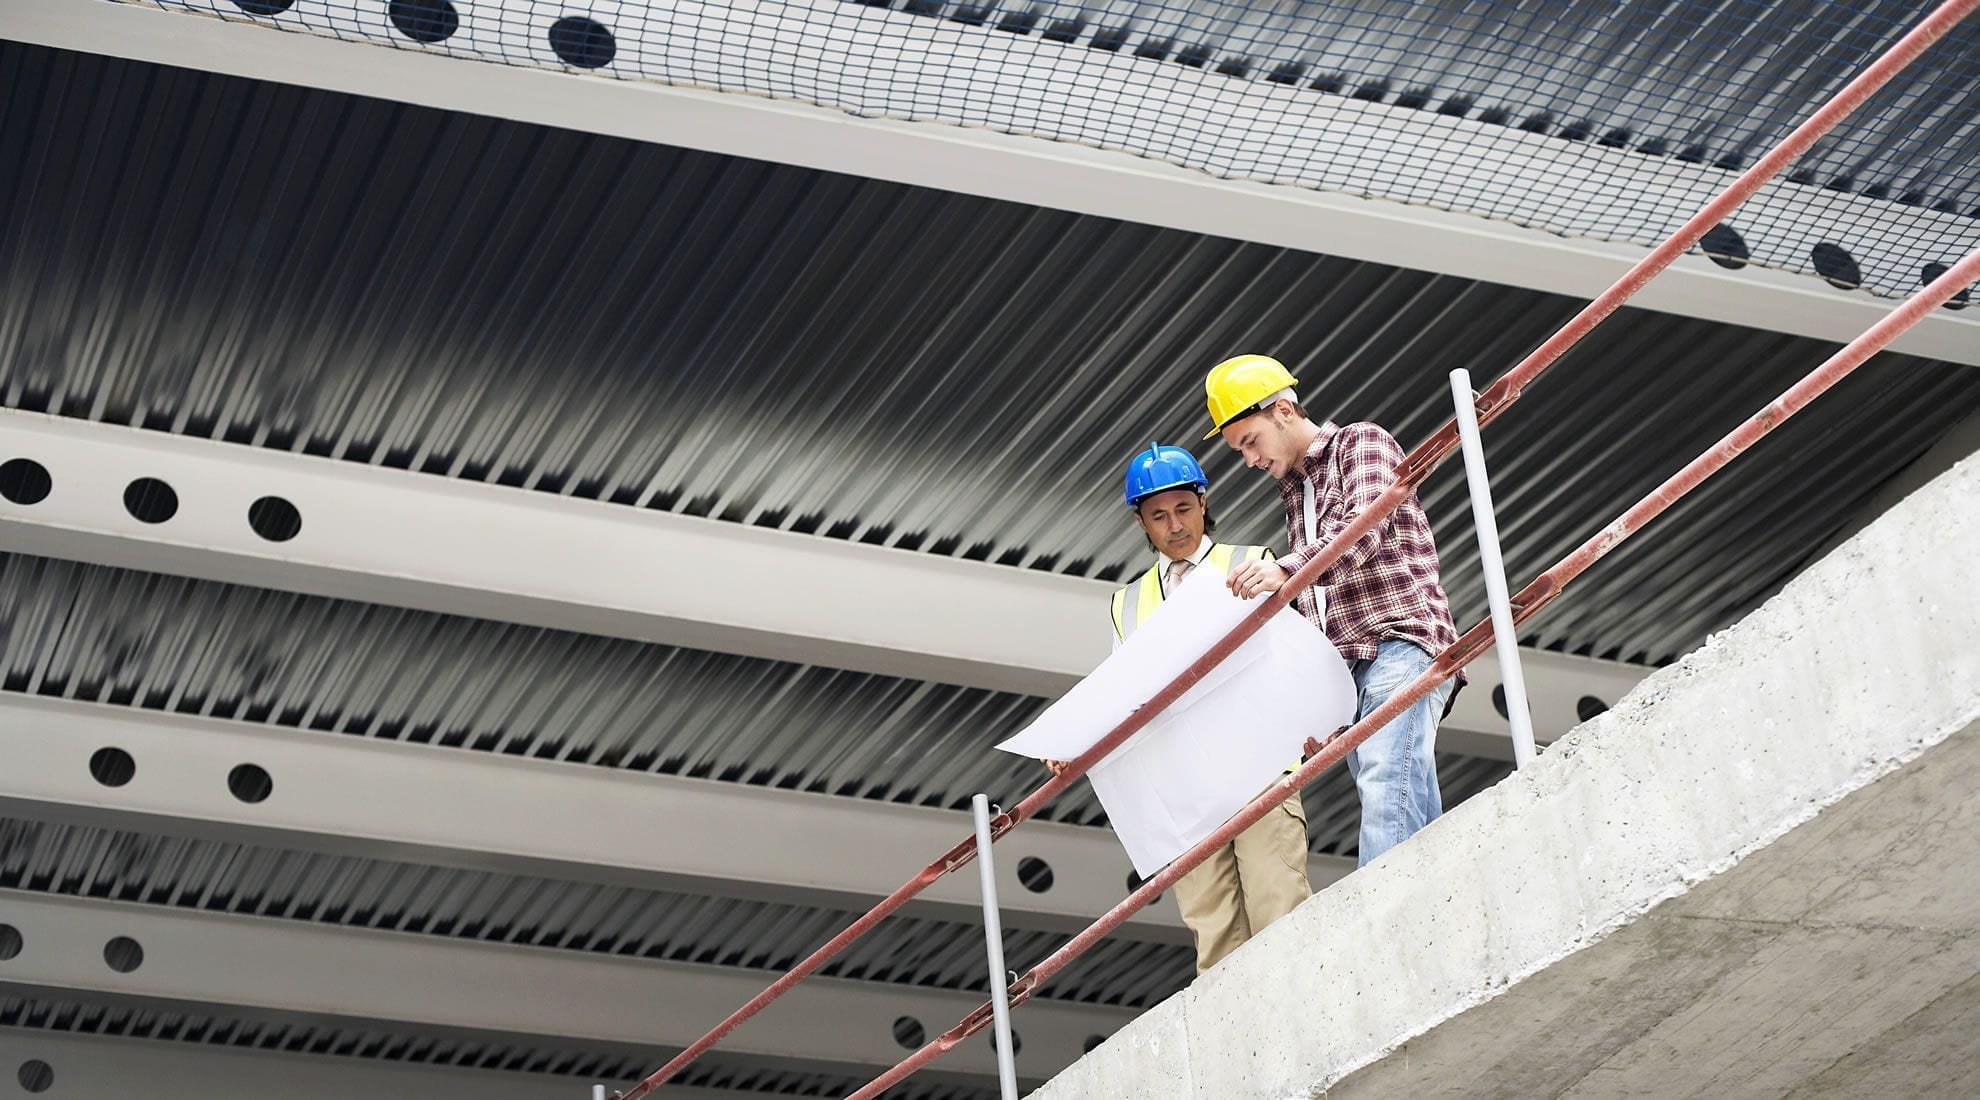 Construction workers looking at plan